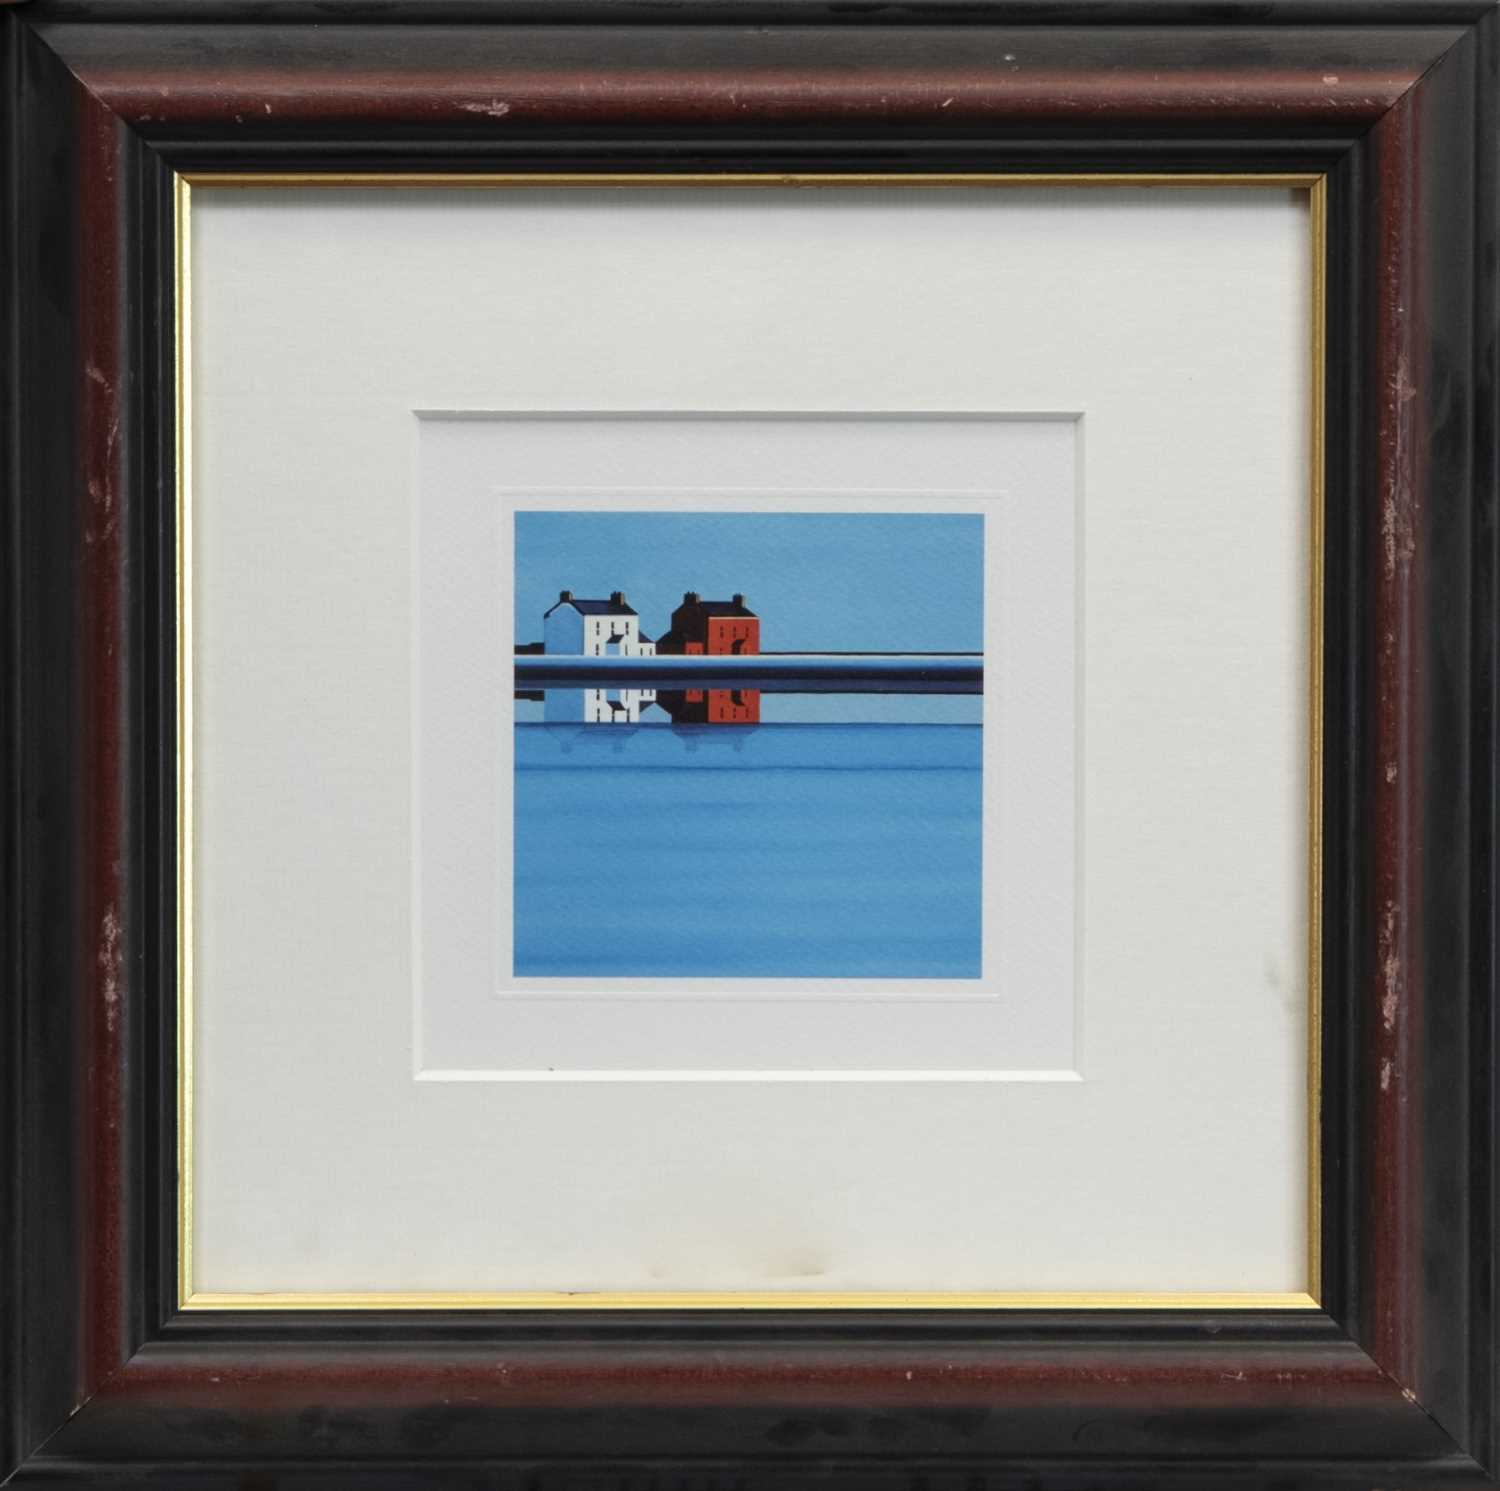 Lot 135 - NEARING ISOLATION, A FRAMED PRINT